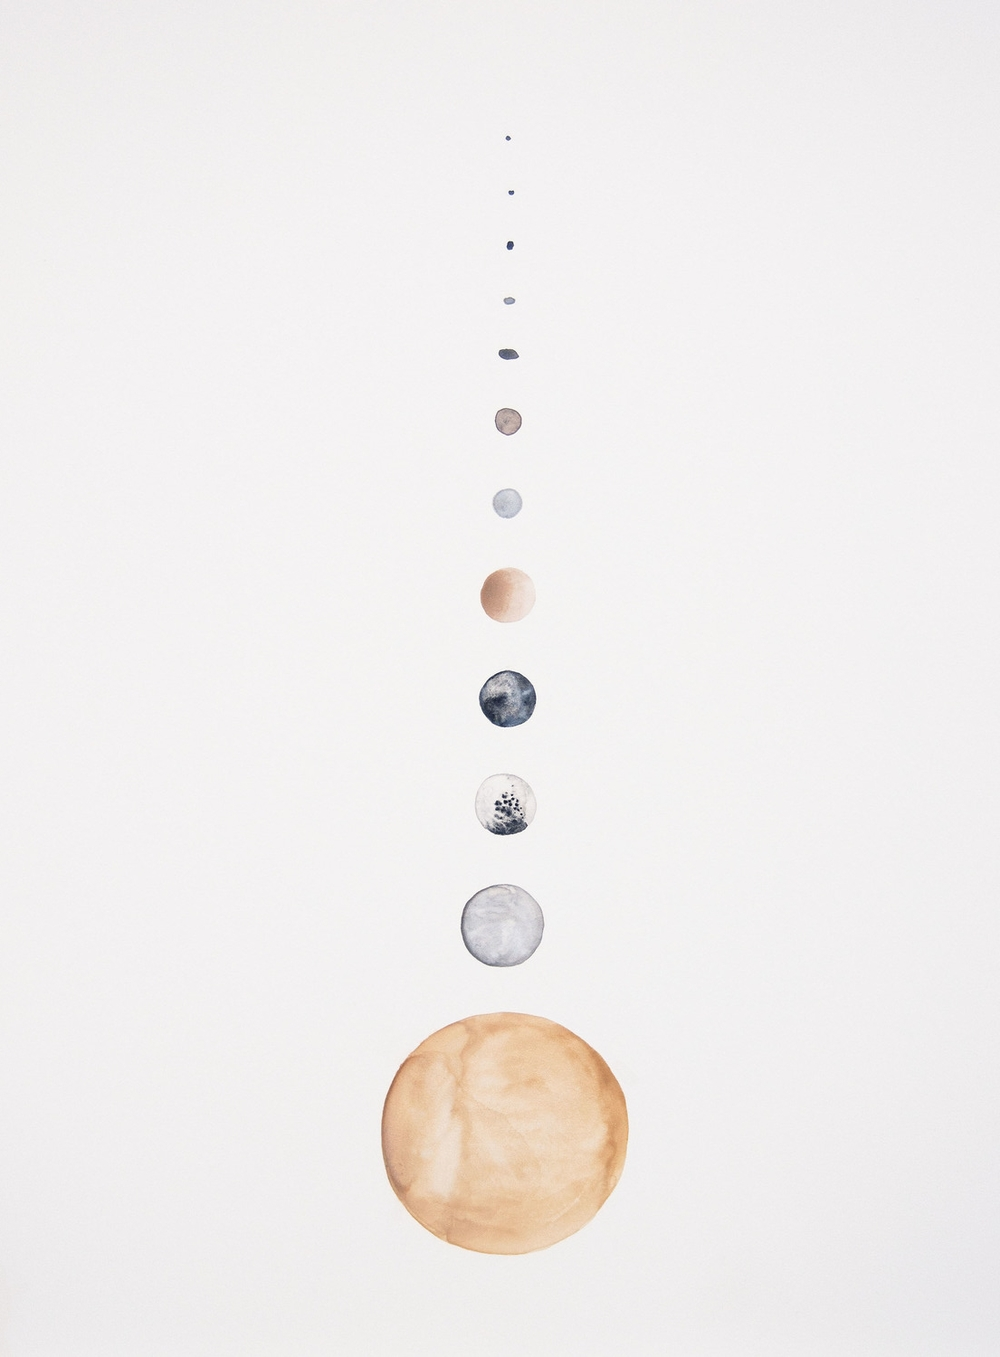 moons of saturn (1 of 1).jpg